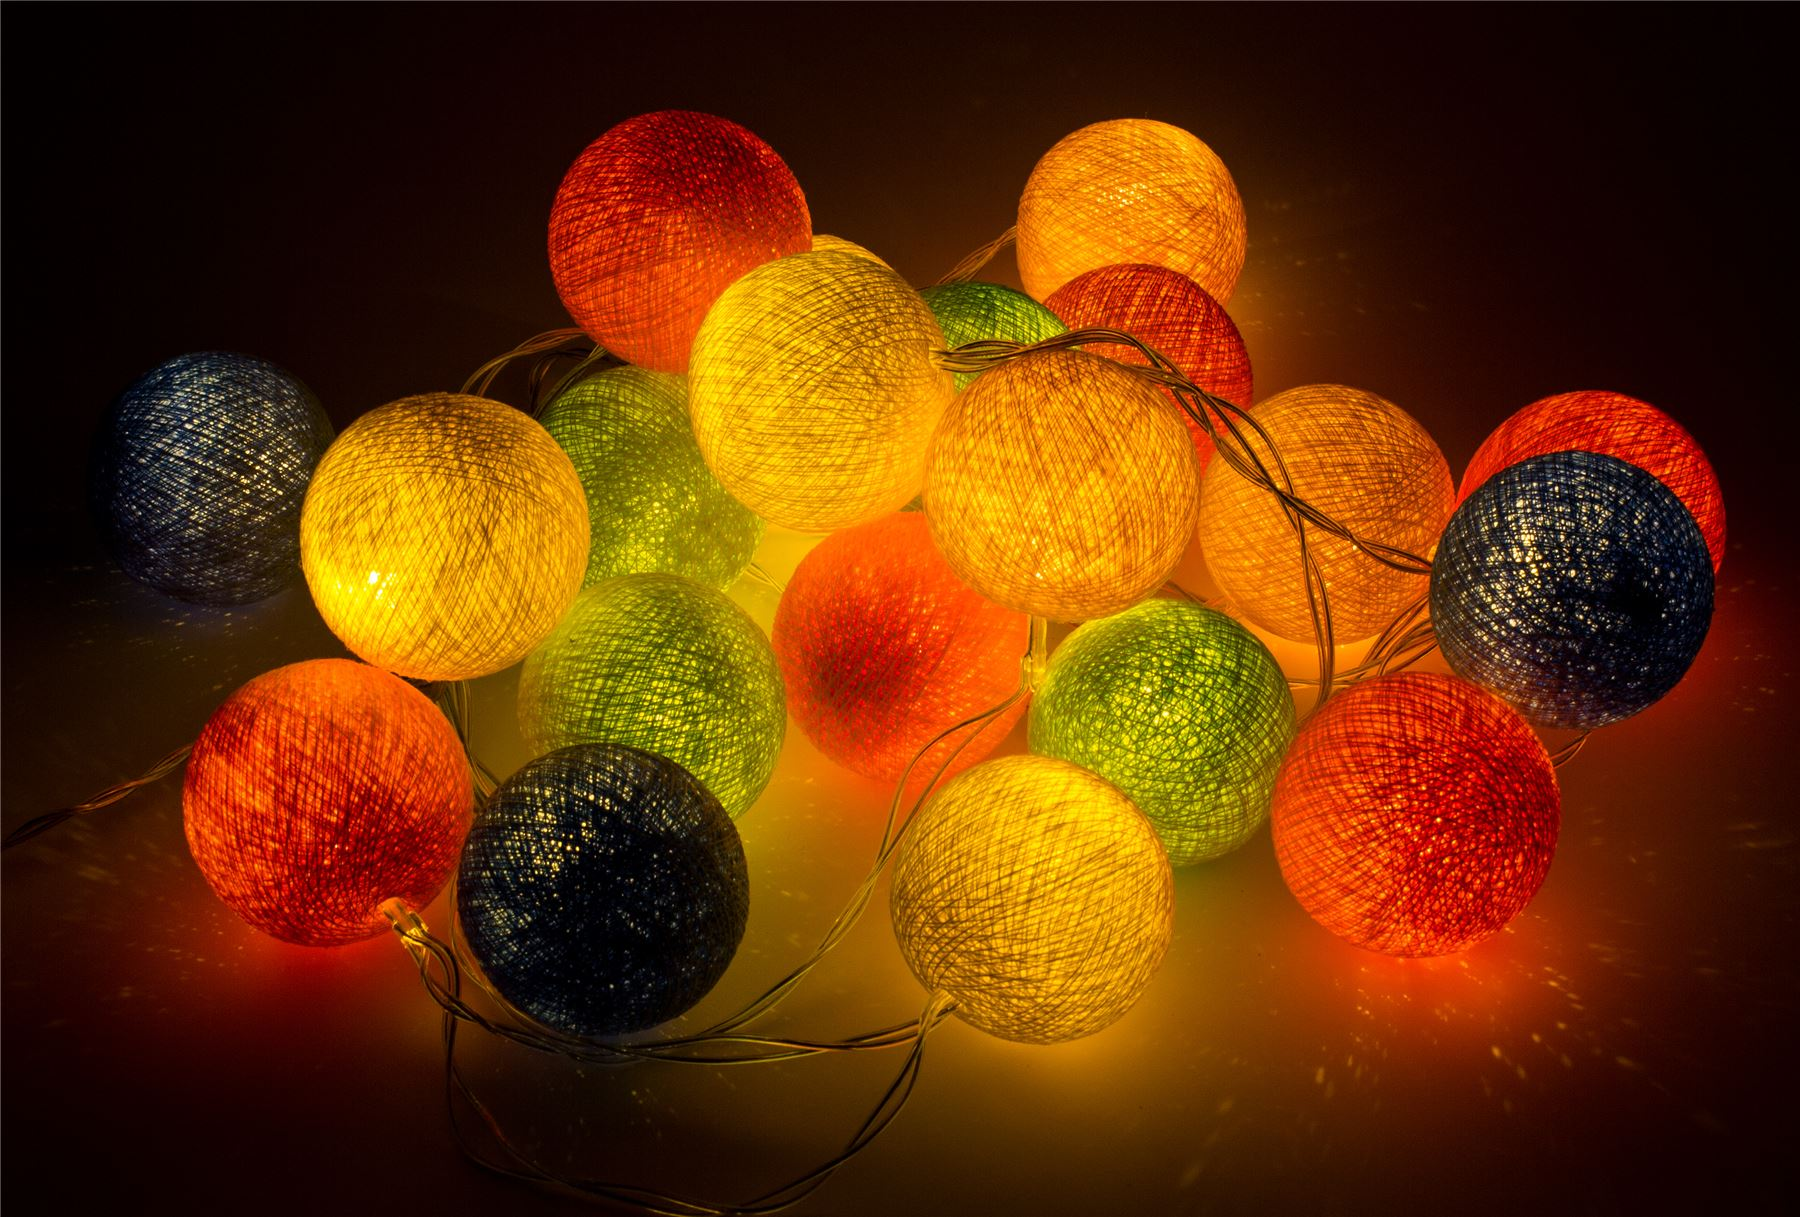 Ball String Lights Indoor : Cotton Ball String Fairy Lights/Indoor Christmas Bedroom Party Patio Wedding eBay